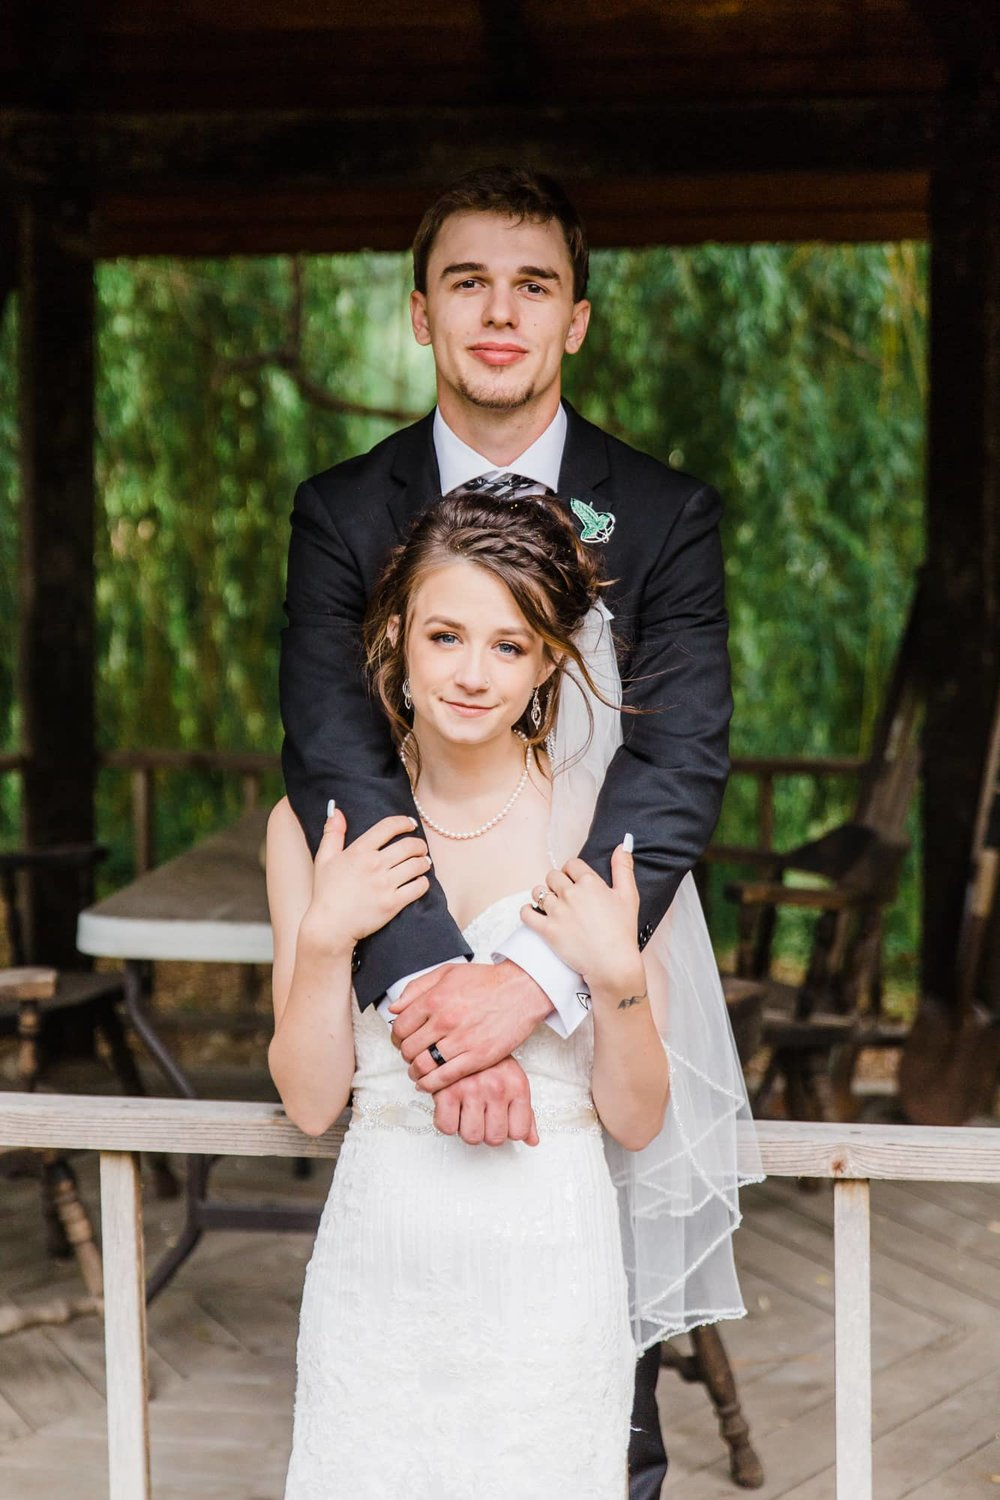 Groom standing behind bride with arms wrapped around her.